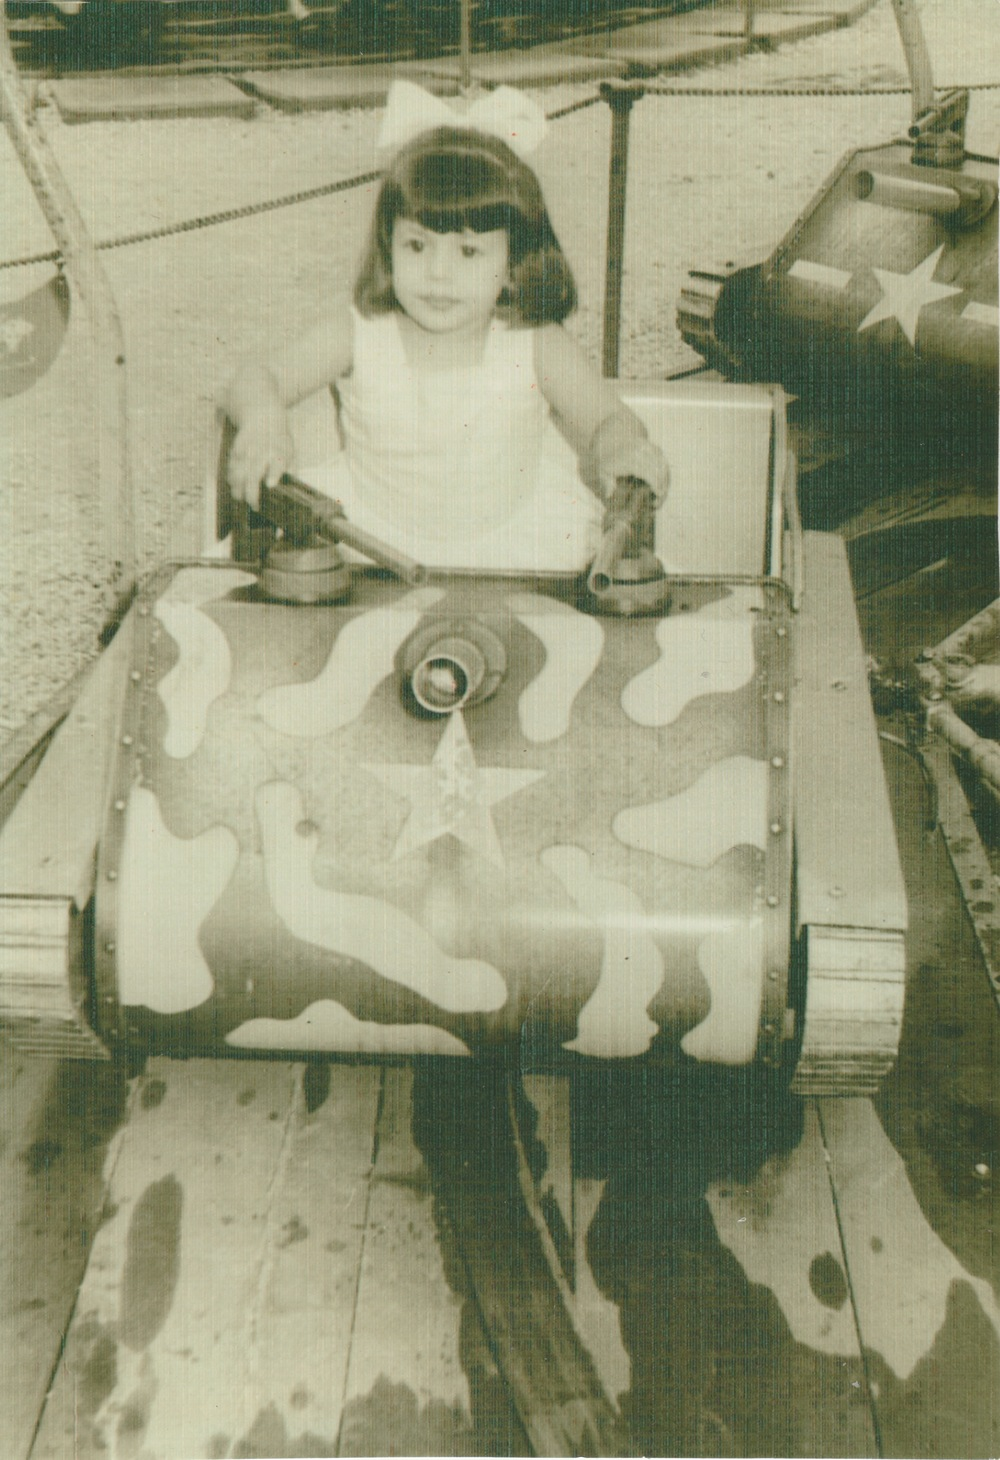 A childhood photo of my mother at around 3 years old.